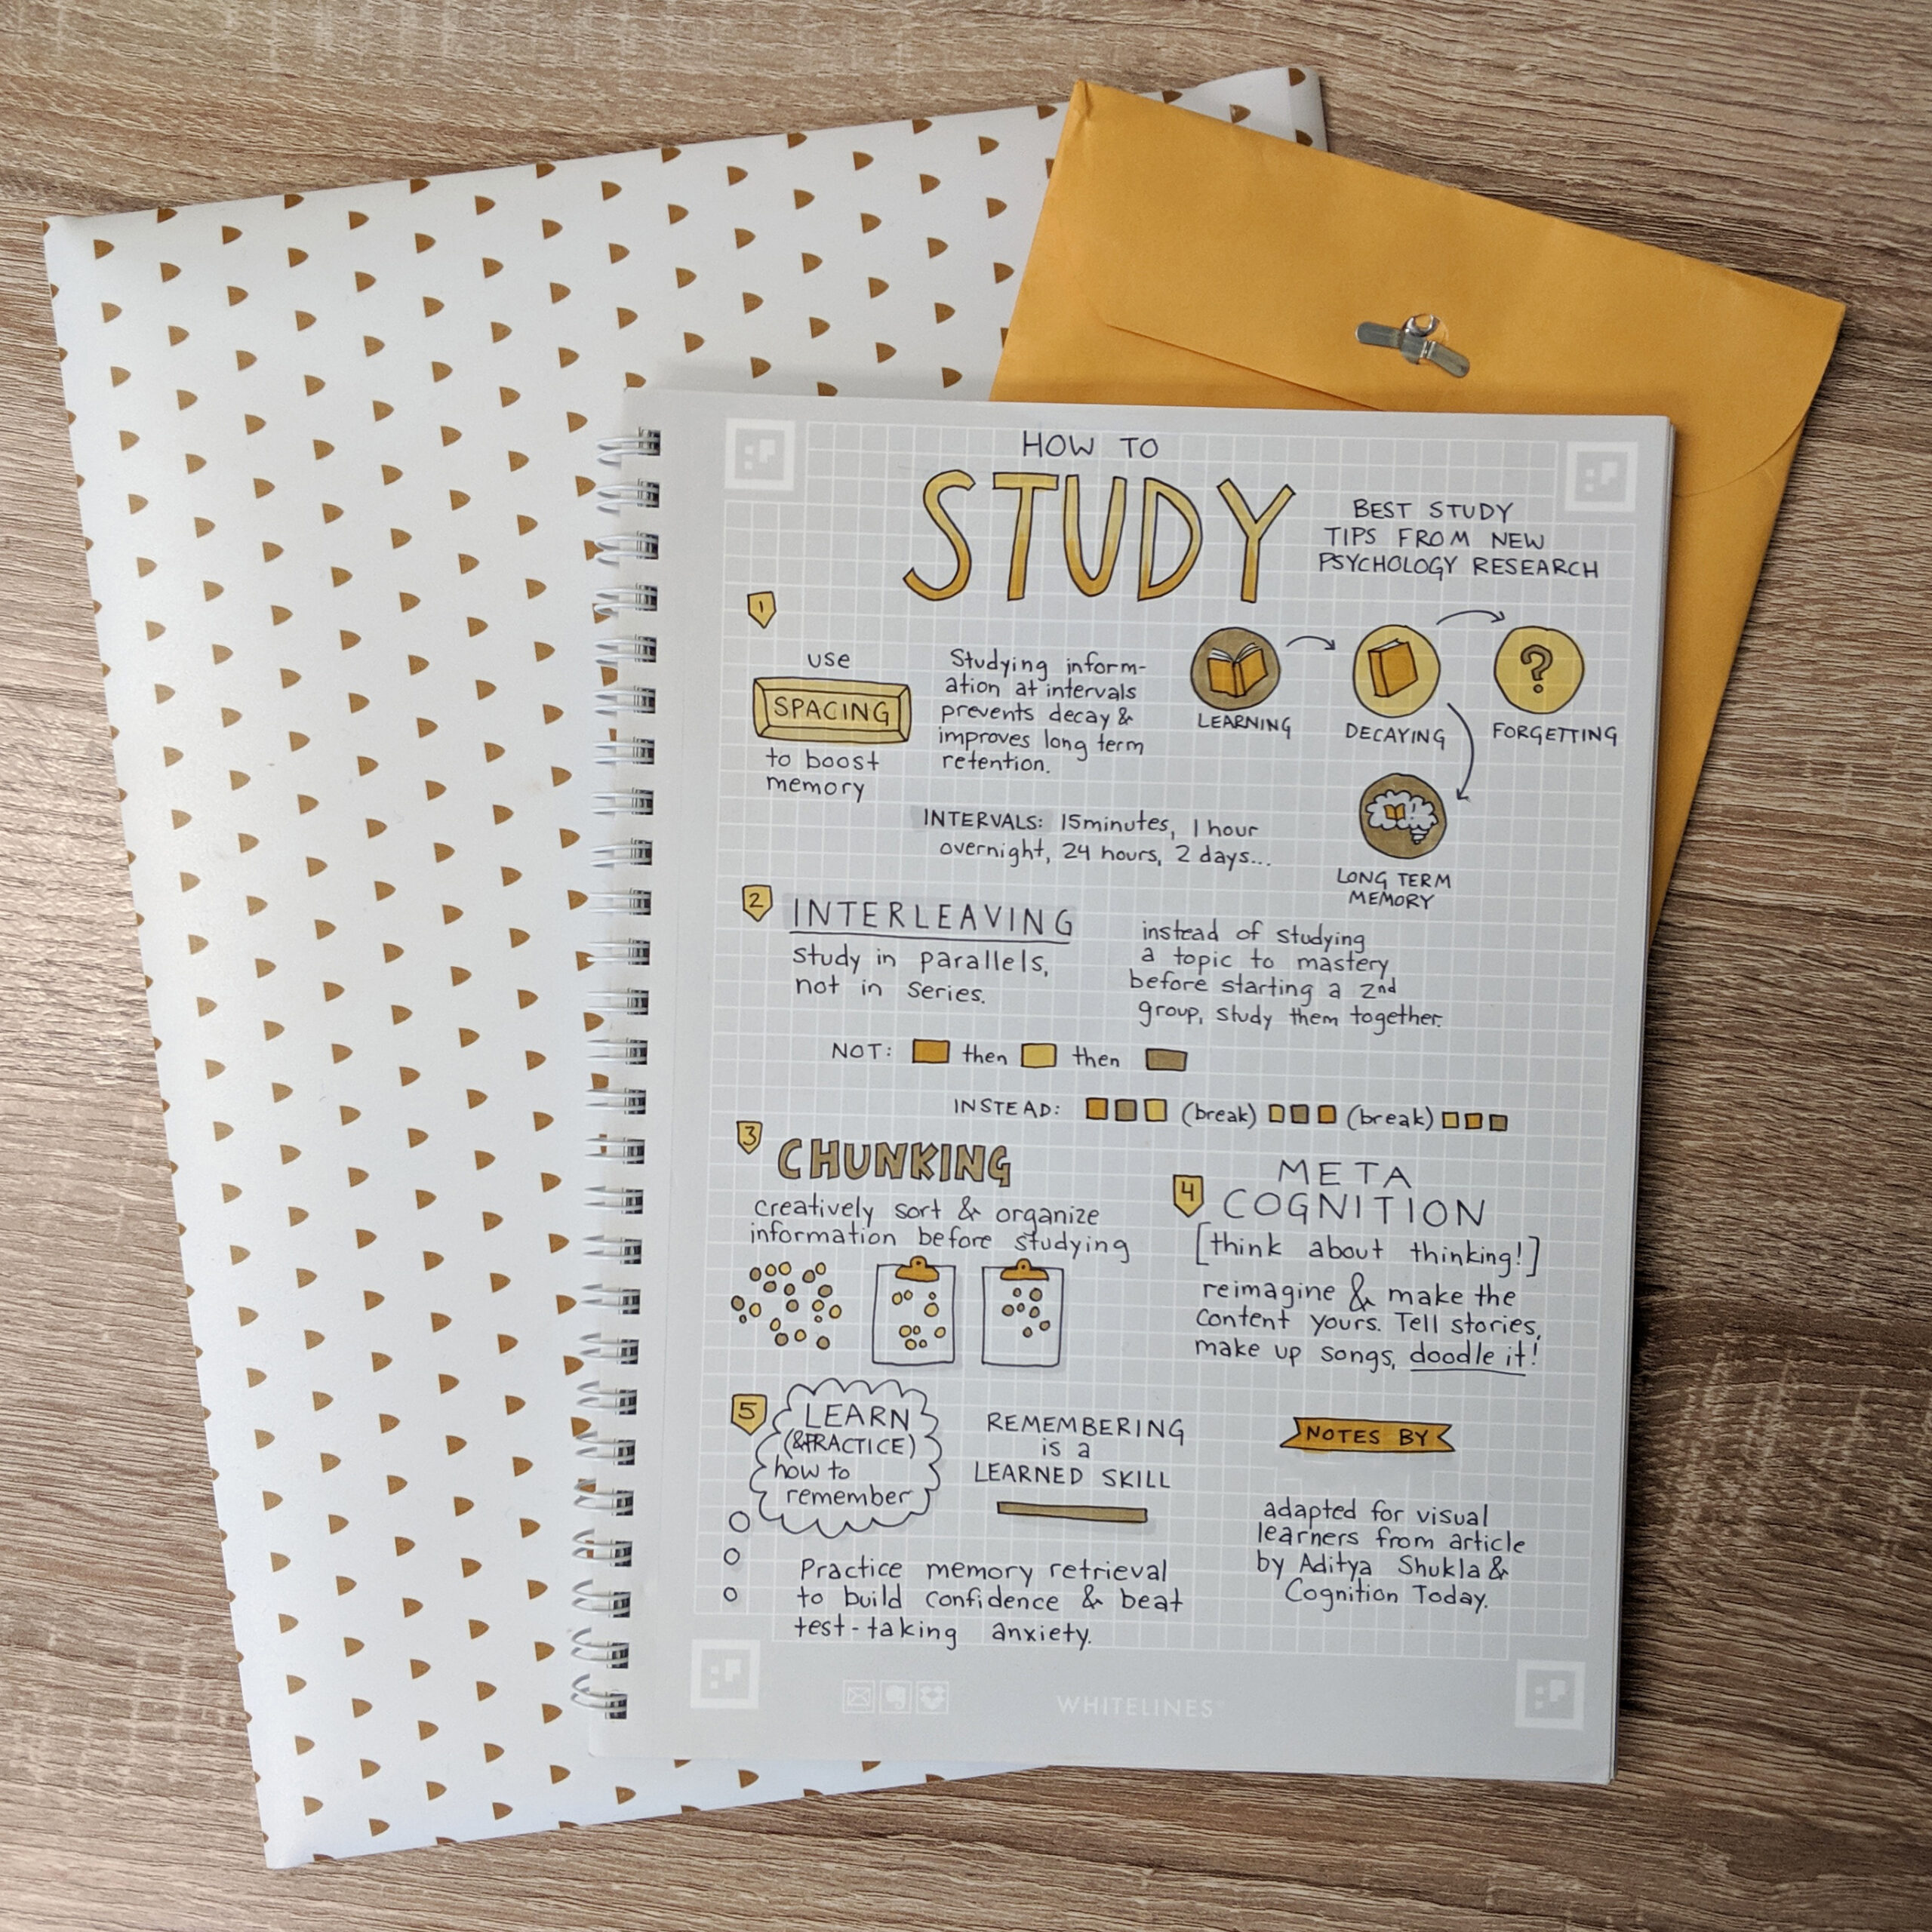 Flat lay photo of a page of notes about study techniques.